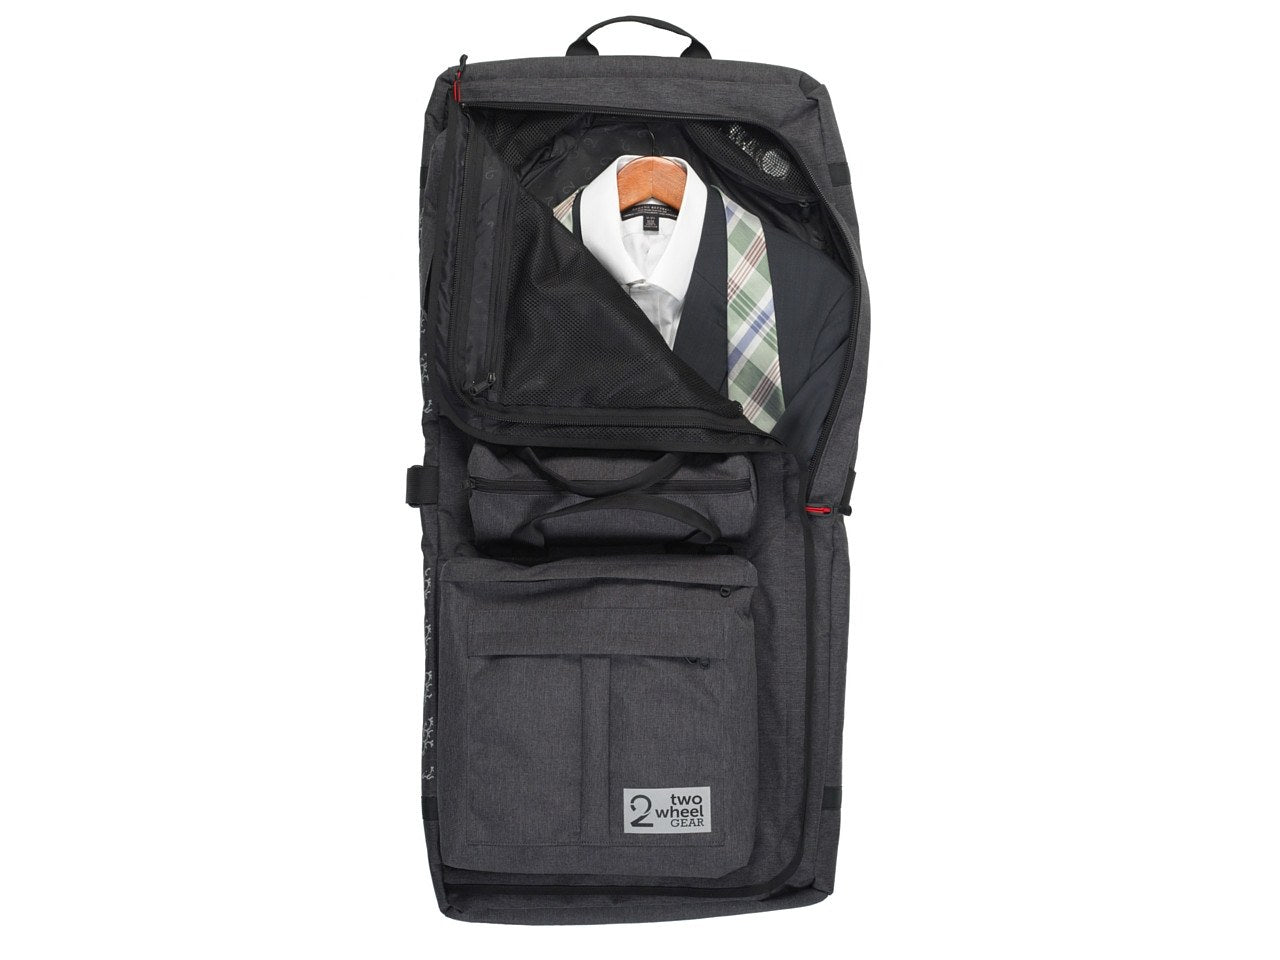 Travel Garment Bag hanging open showing suit - Two Wheel Gear